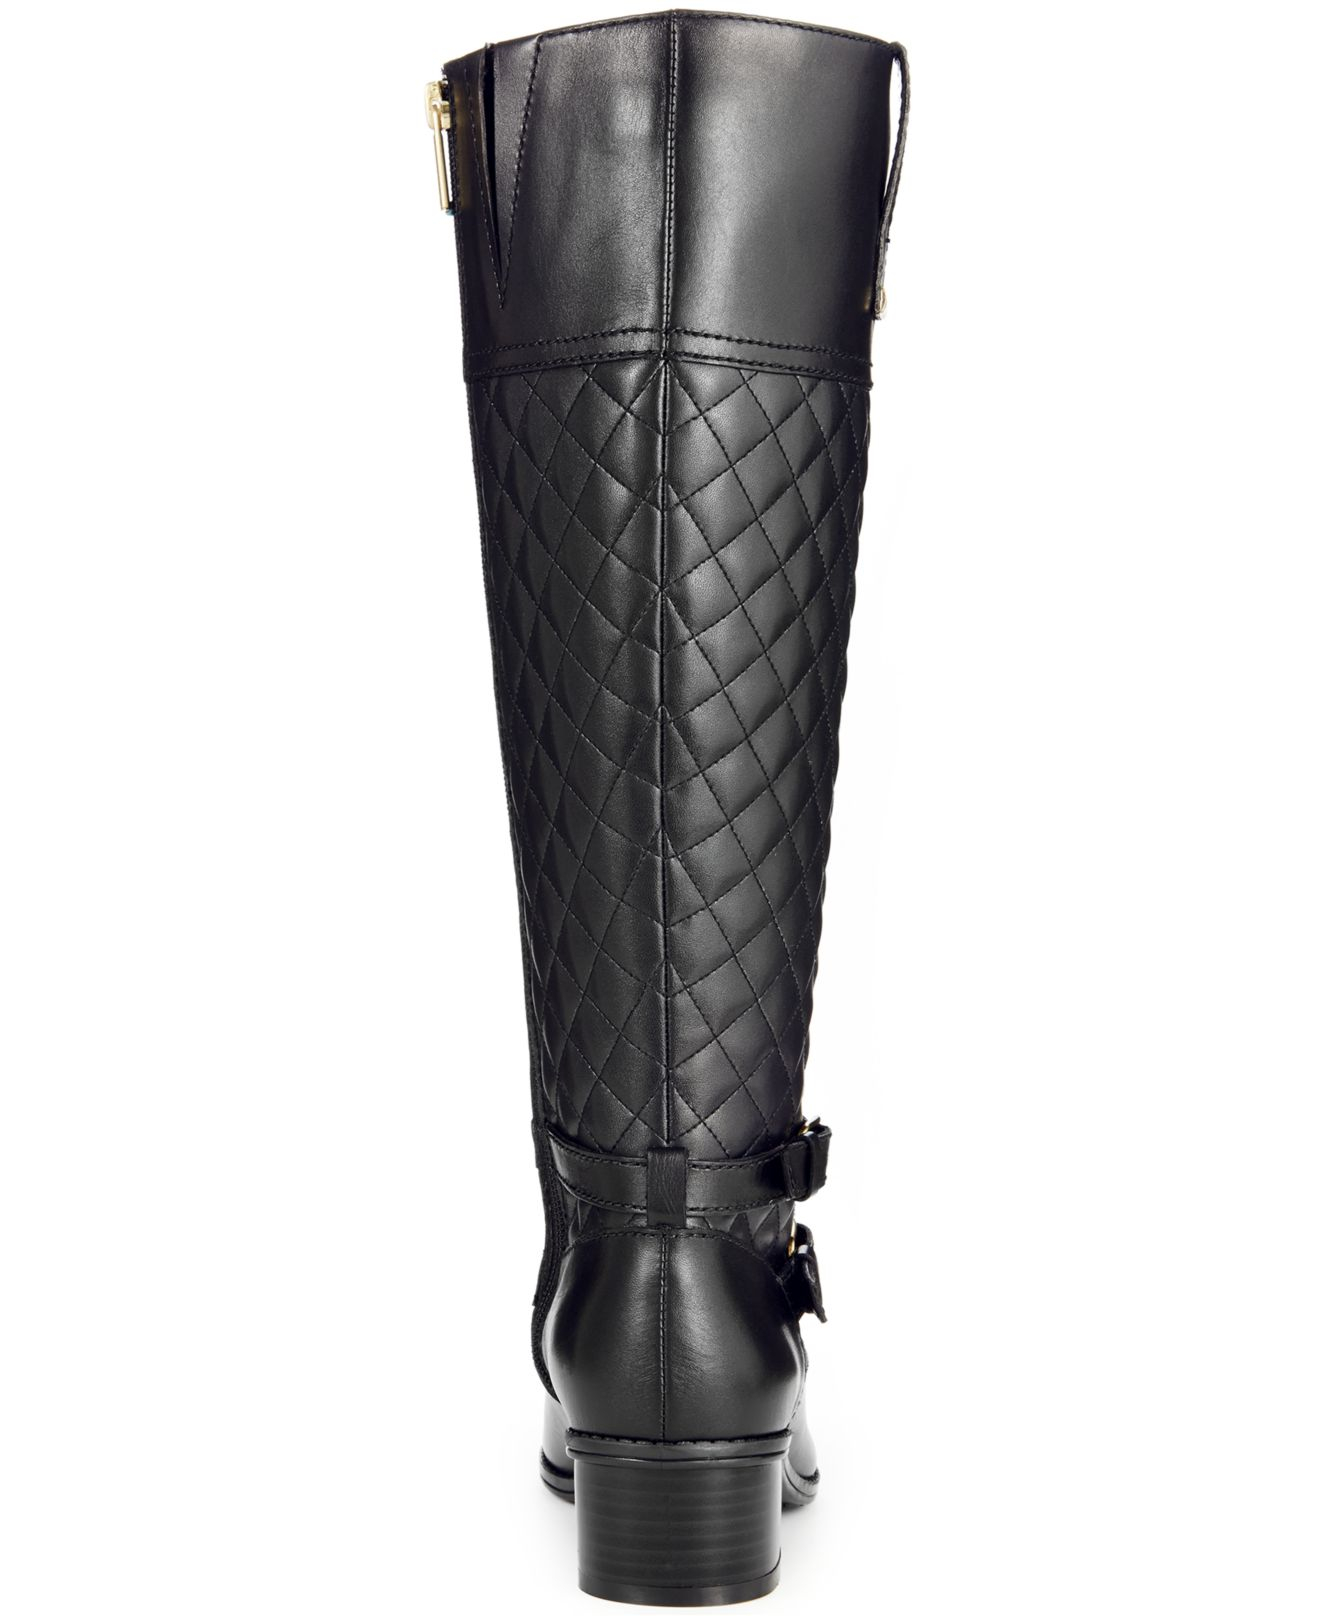 Bandolino Claraa Tall Riding Boots - A Macy'S Exclusive in Black ...